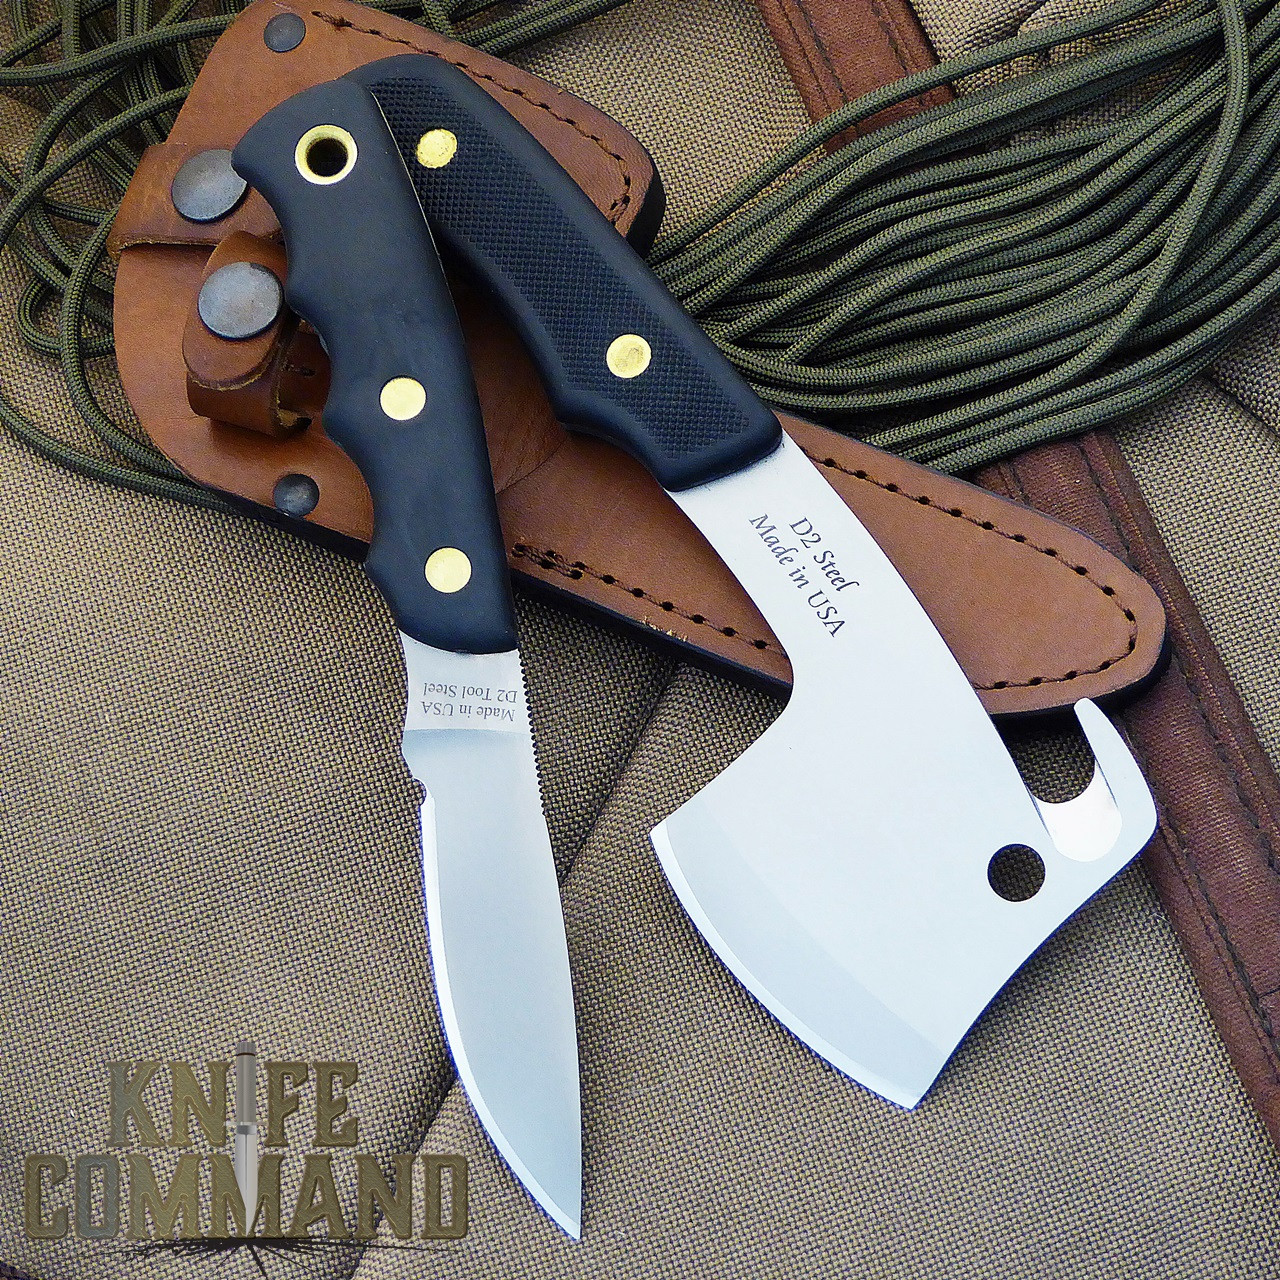 Knives of Alaska Bobcat Mini Hatchet Alpha Wolf Hunting Knife Combo.  Great for hunting or camping.